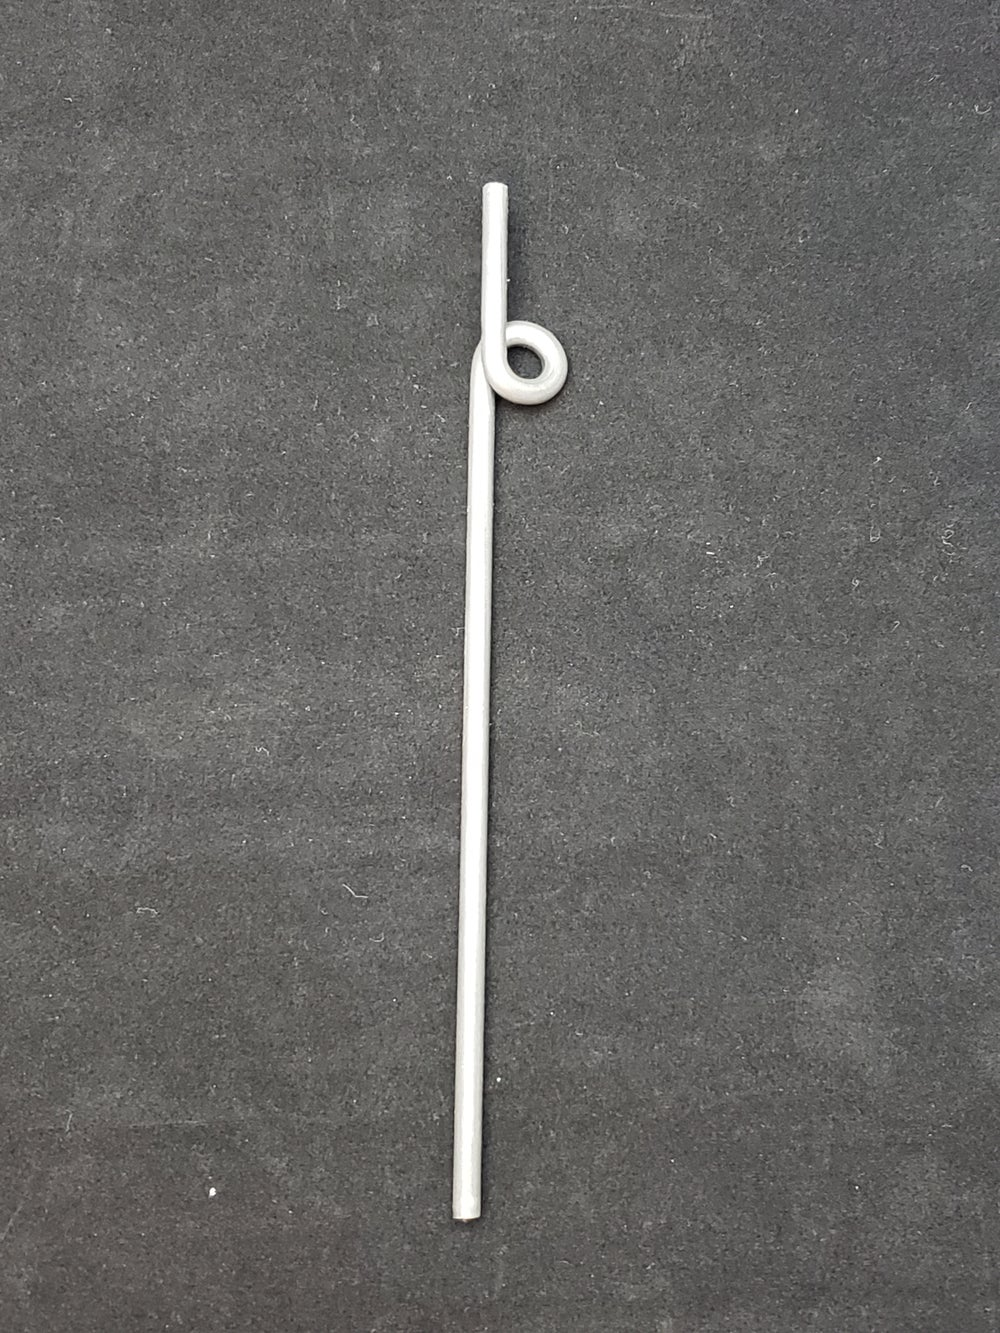 "Image of 3/16"" righthand wire"